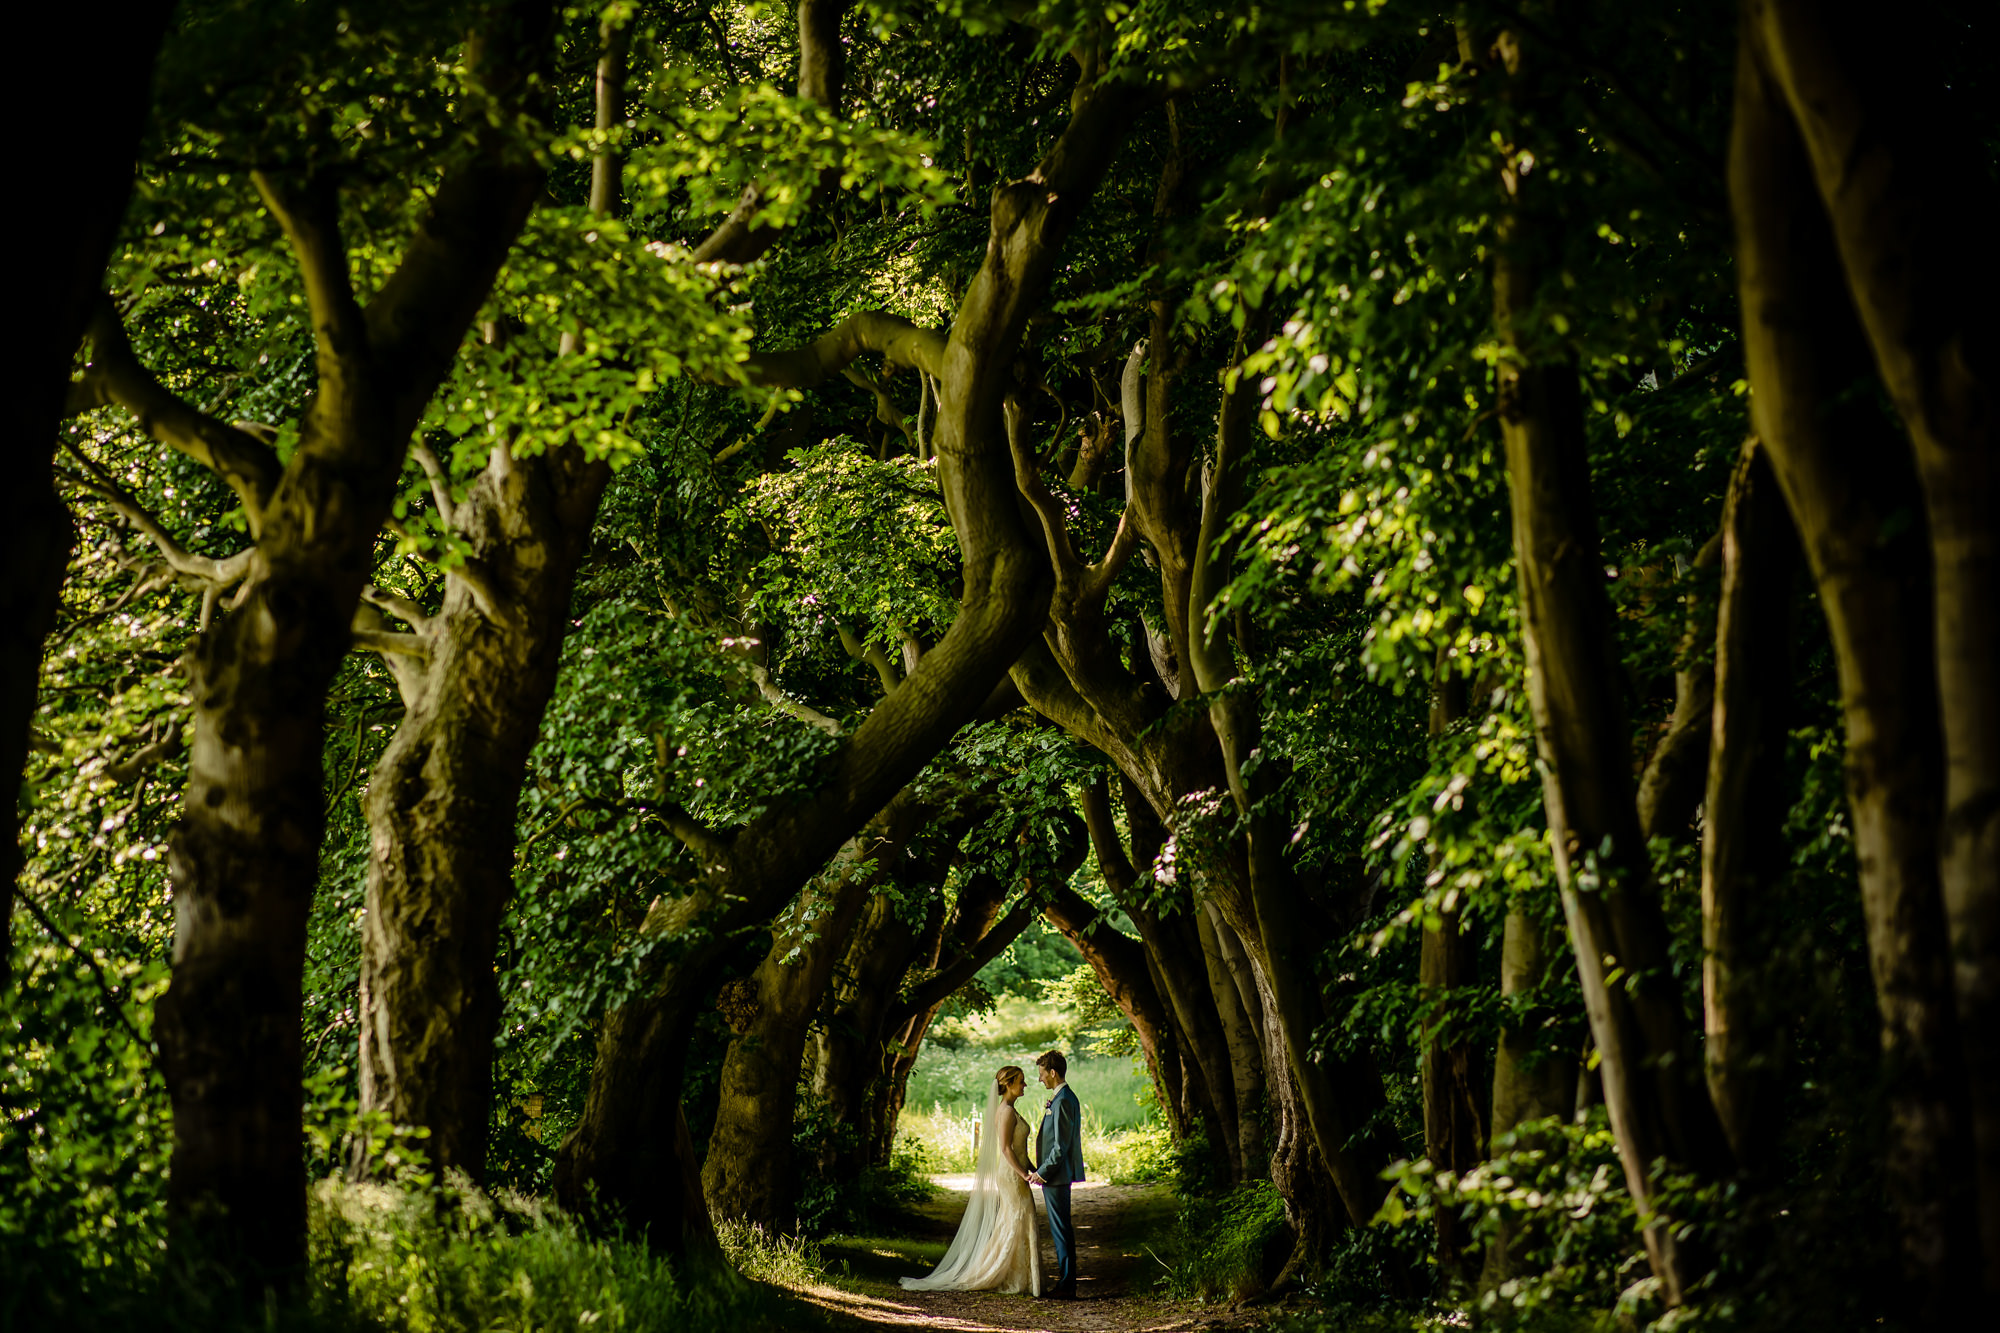 Bride and groom in cathedral of trees, by Eppel Fotographie